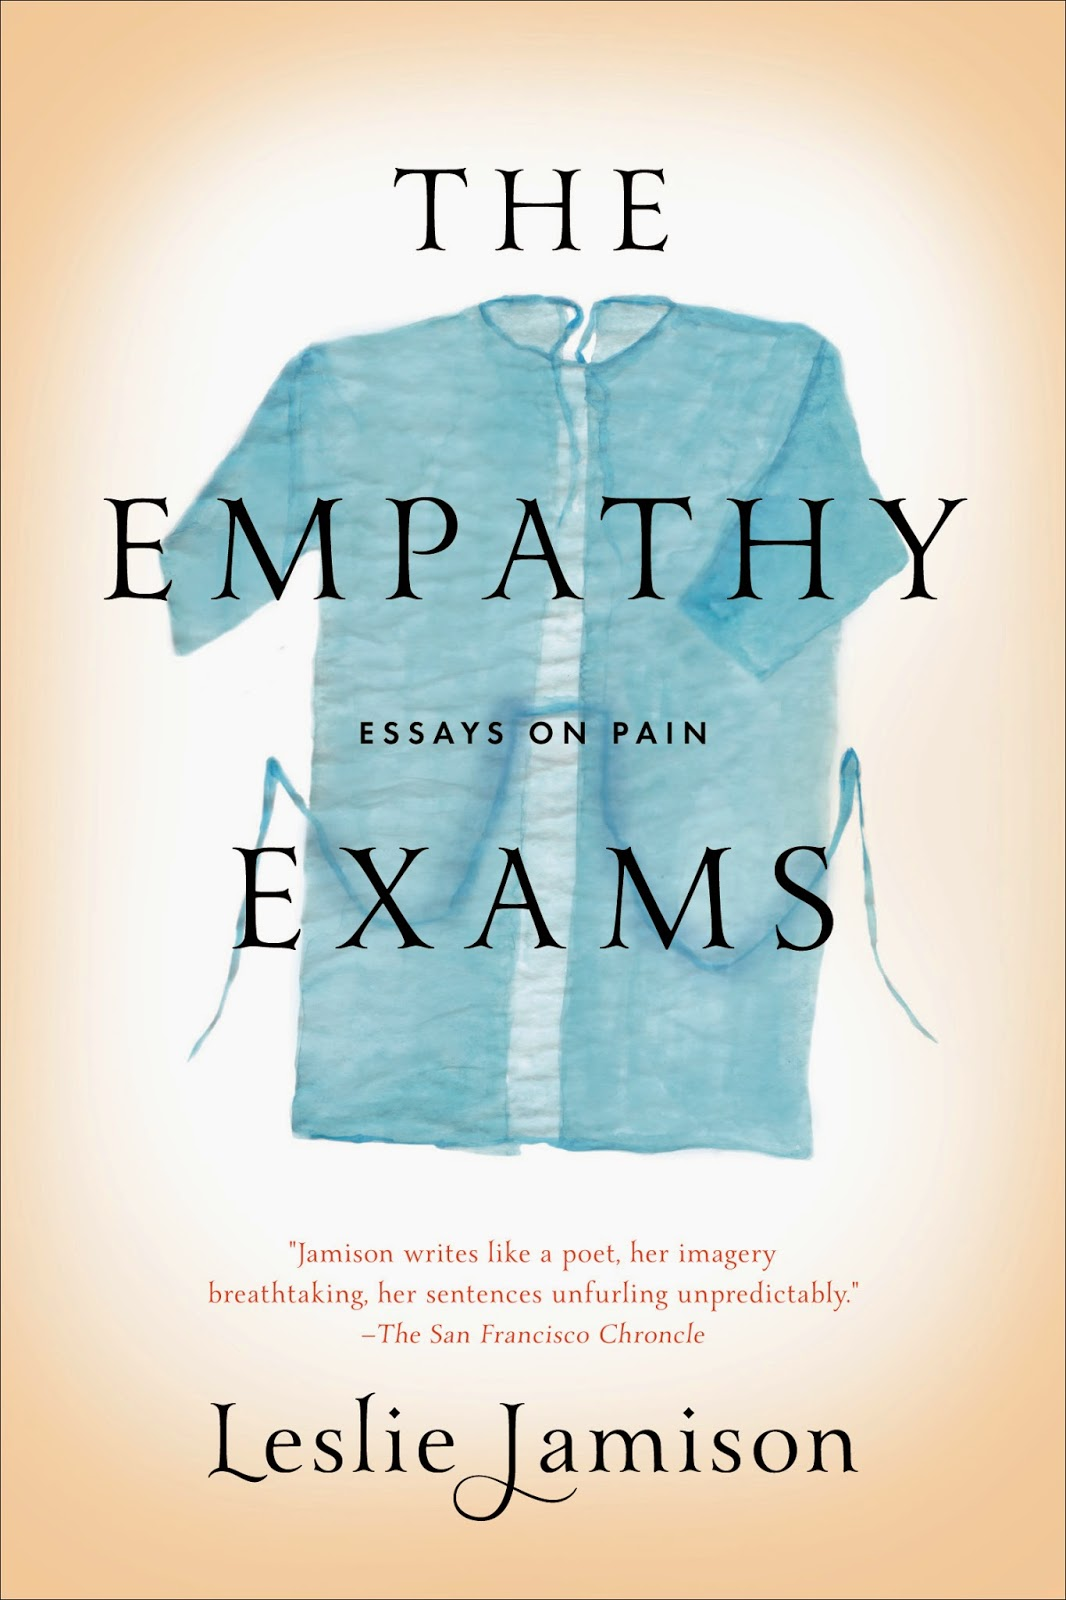 the empathy exams essays leslie jamison The empathy exams review – thought-provoking essays on our emotional boundaries leslie jamison's debut collection is a fine blend of anecdote and analysis anita sethi.